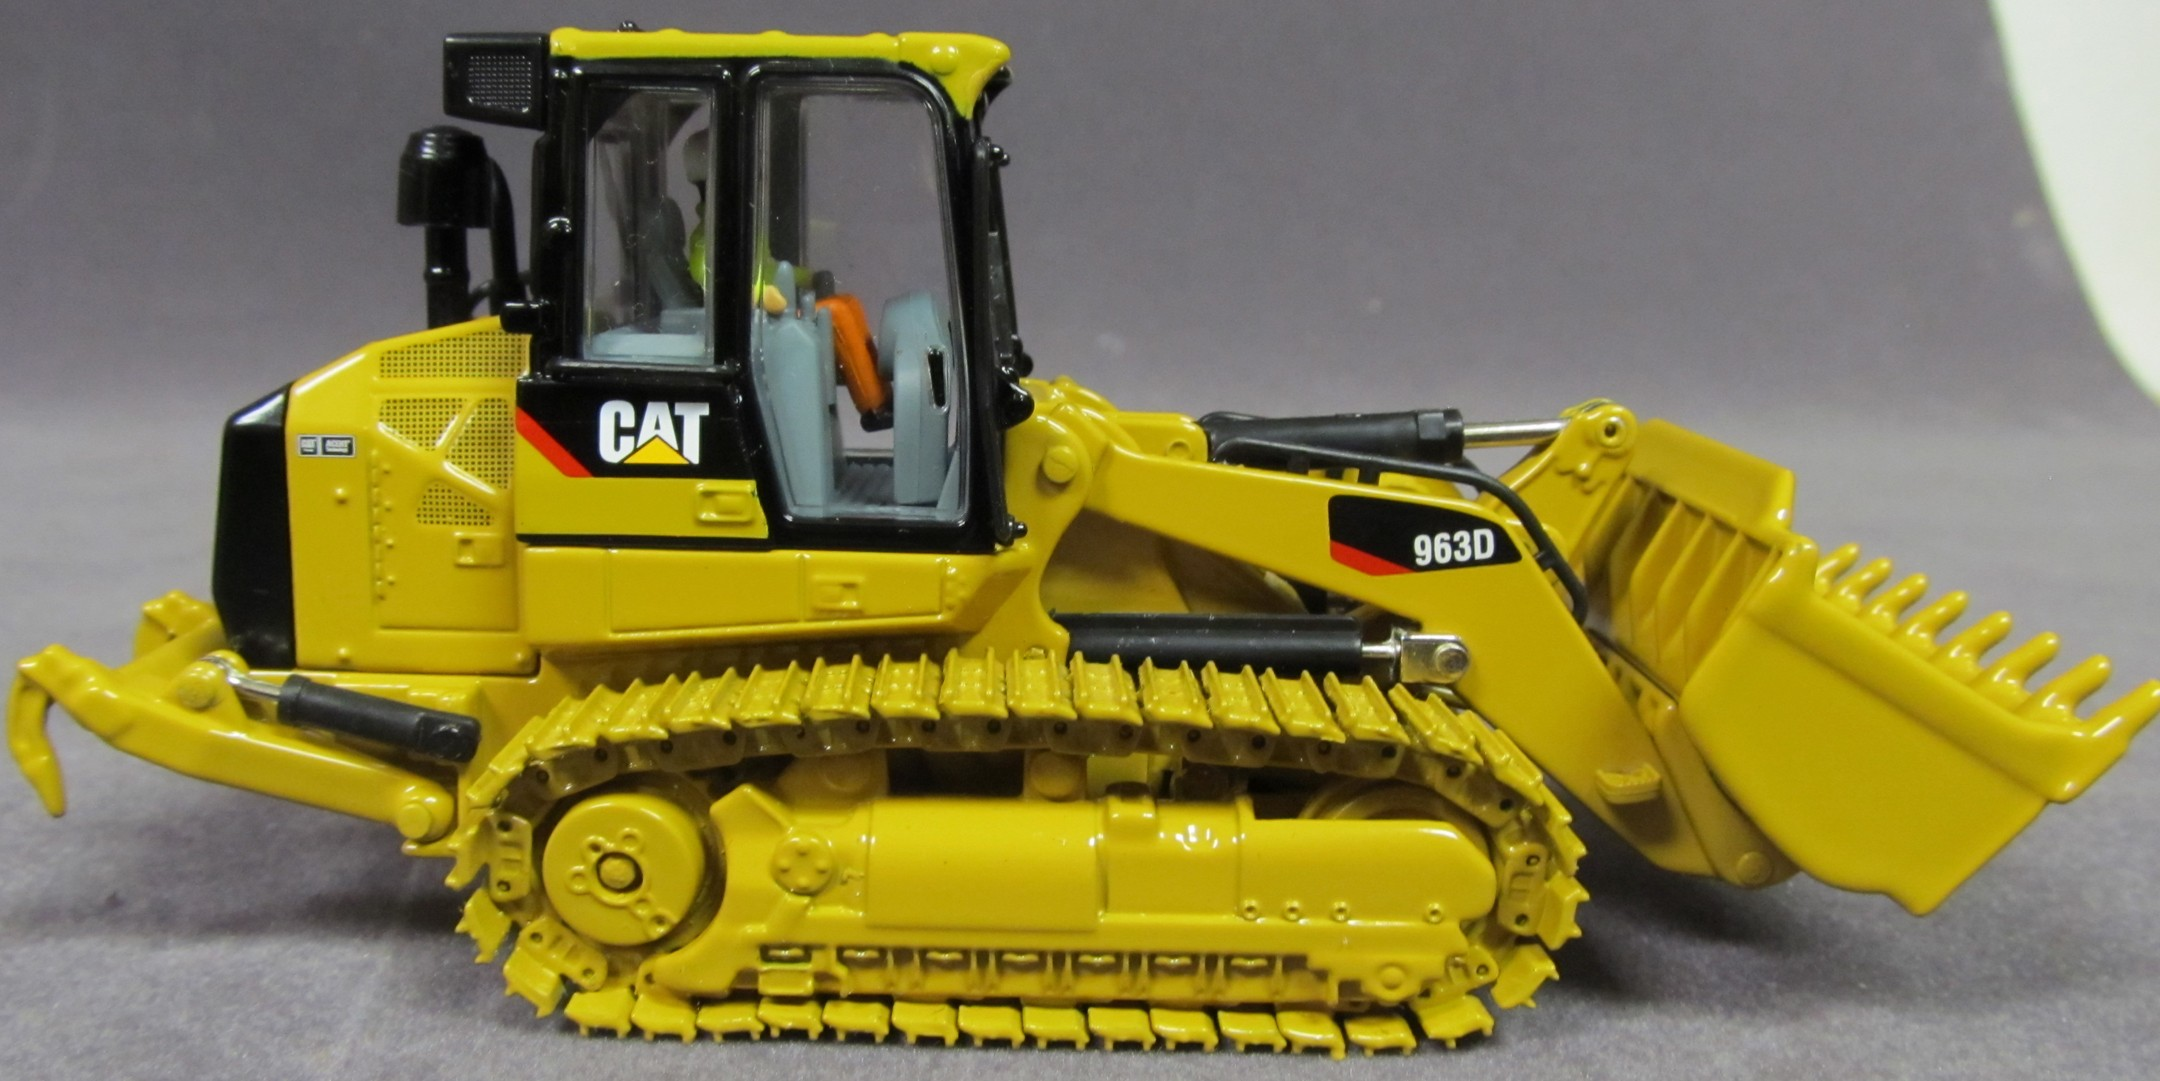 Caterpillar 963D Track Loader